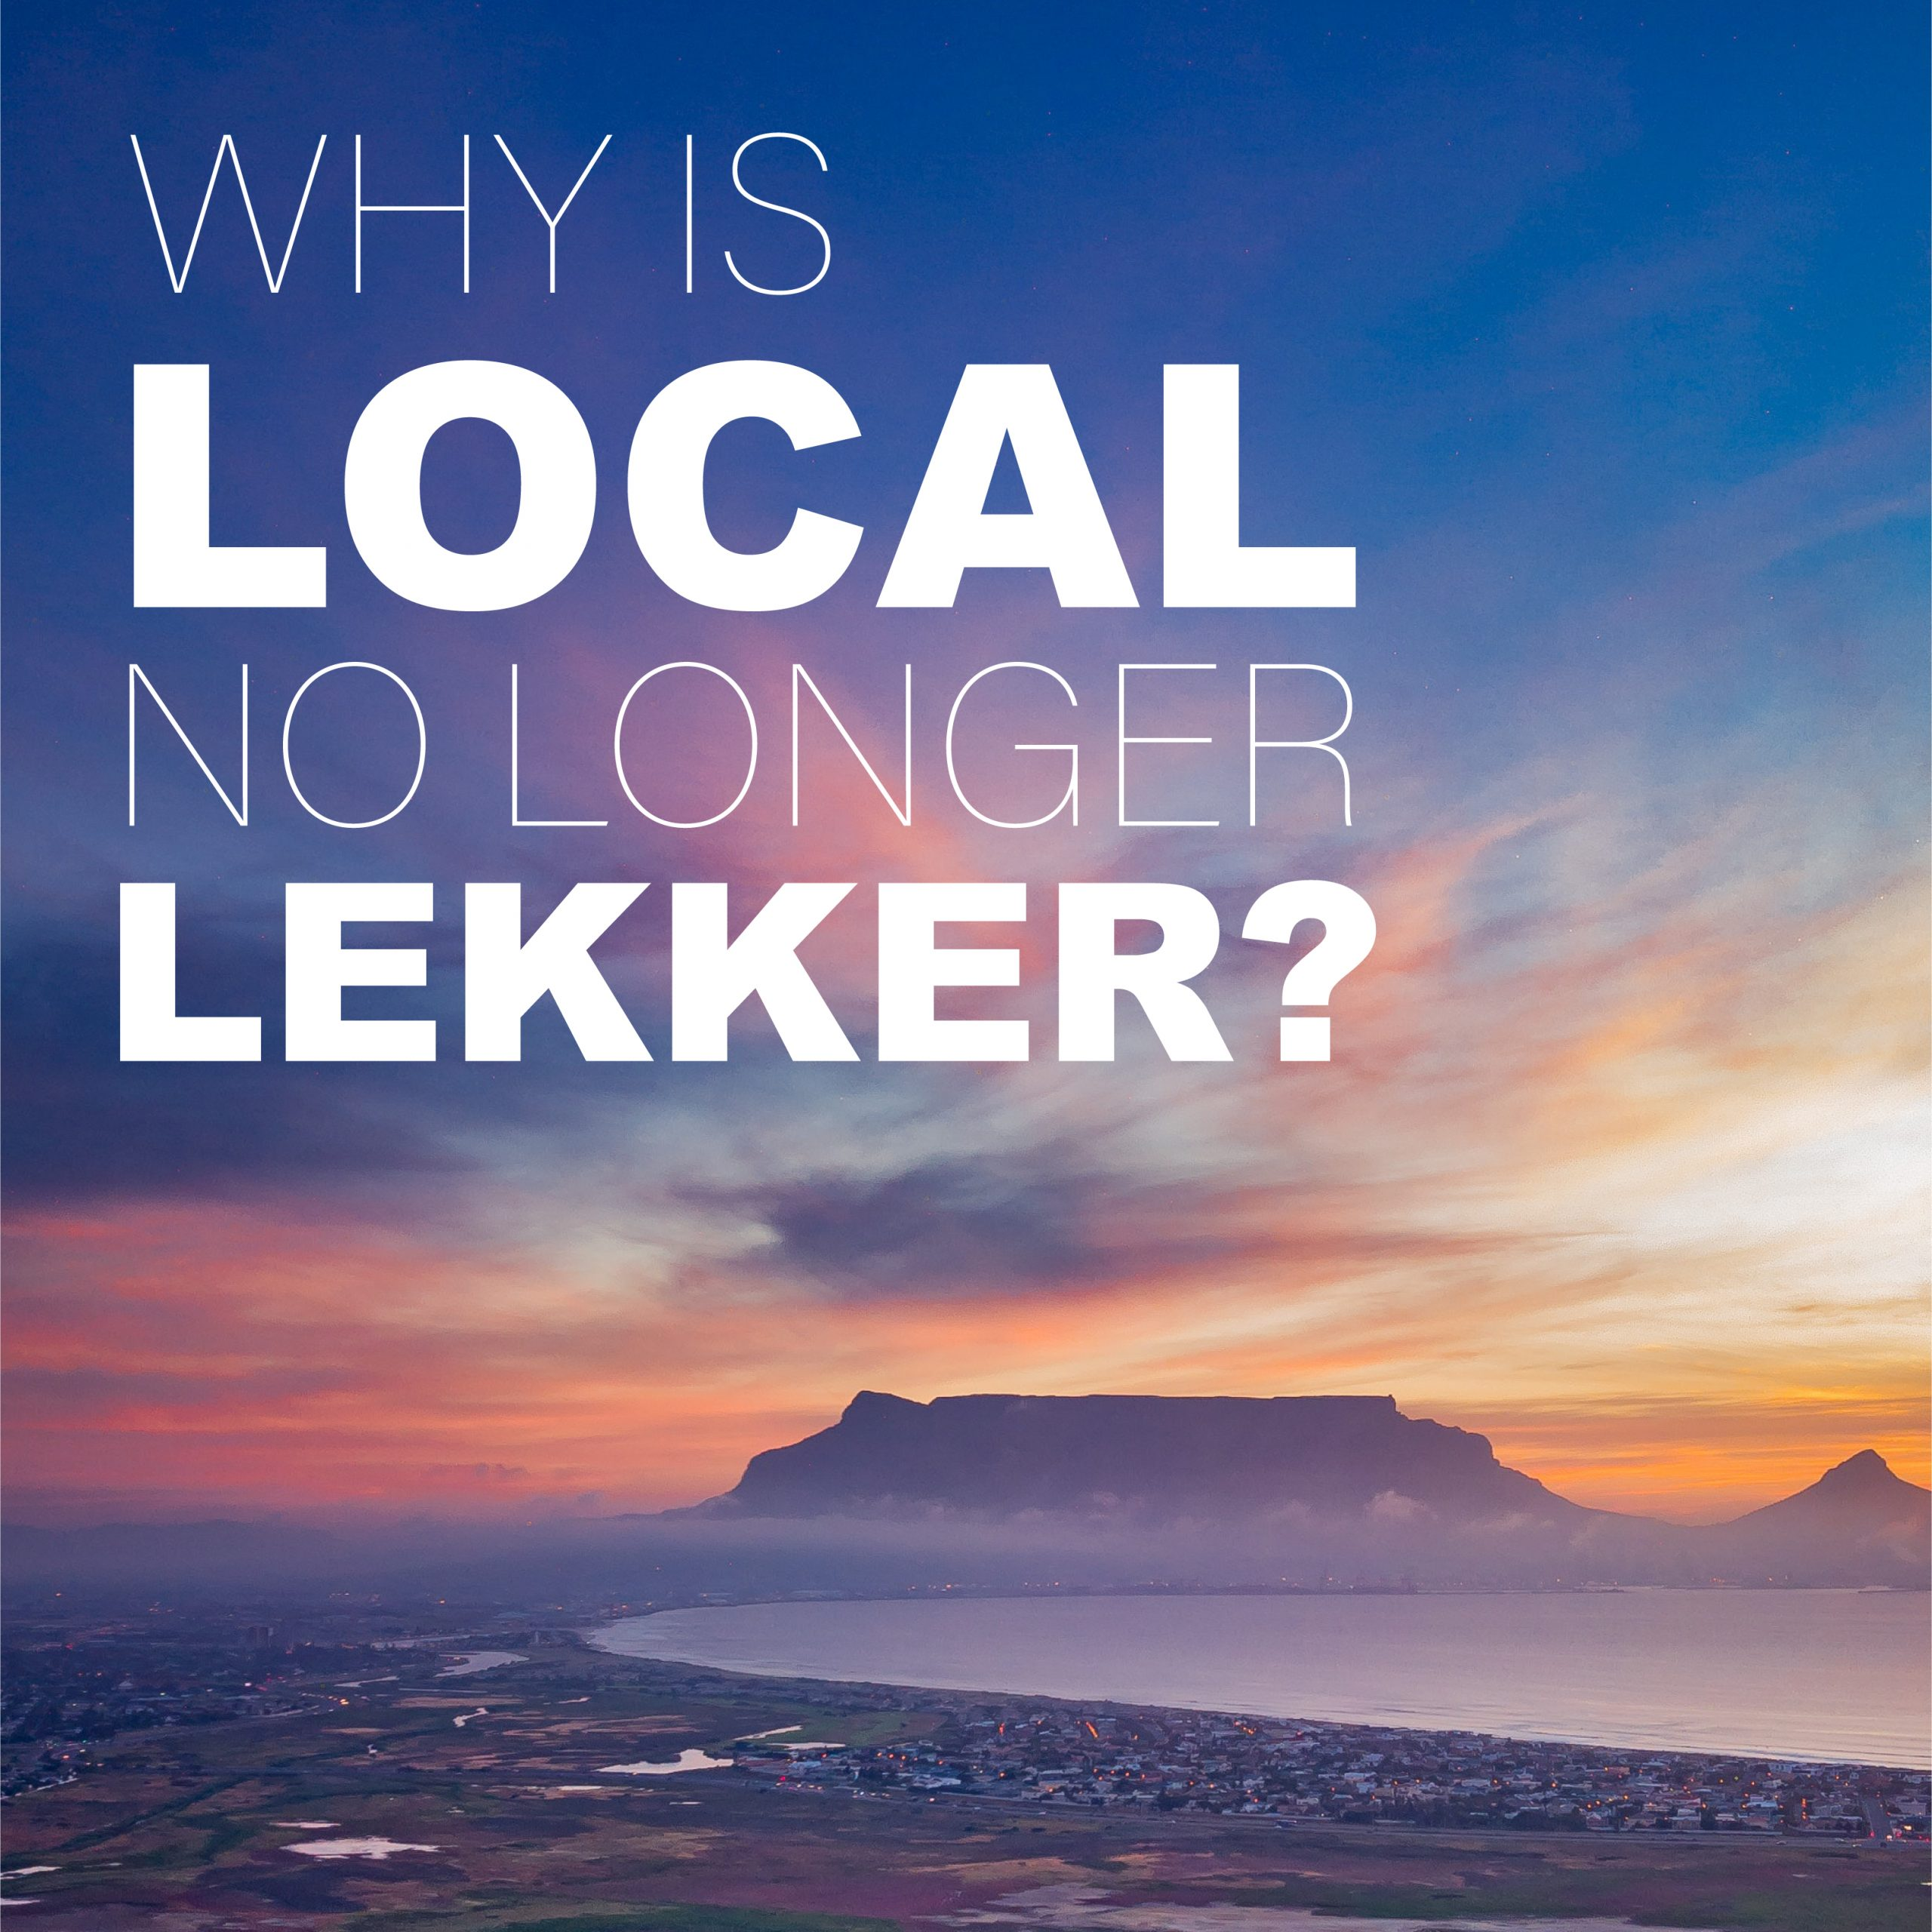 Social-Media-Why-Is-Local-No-Longer-Lekker-scaled.jpg